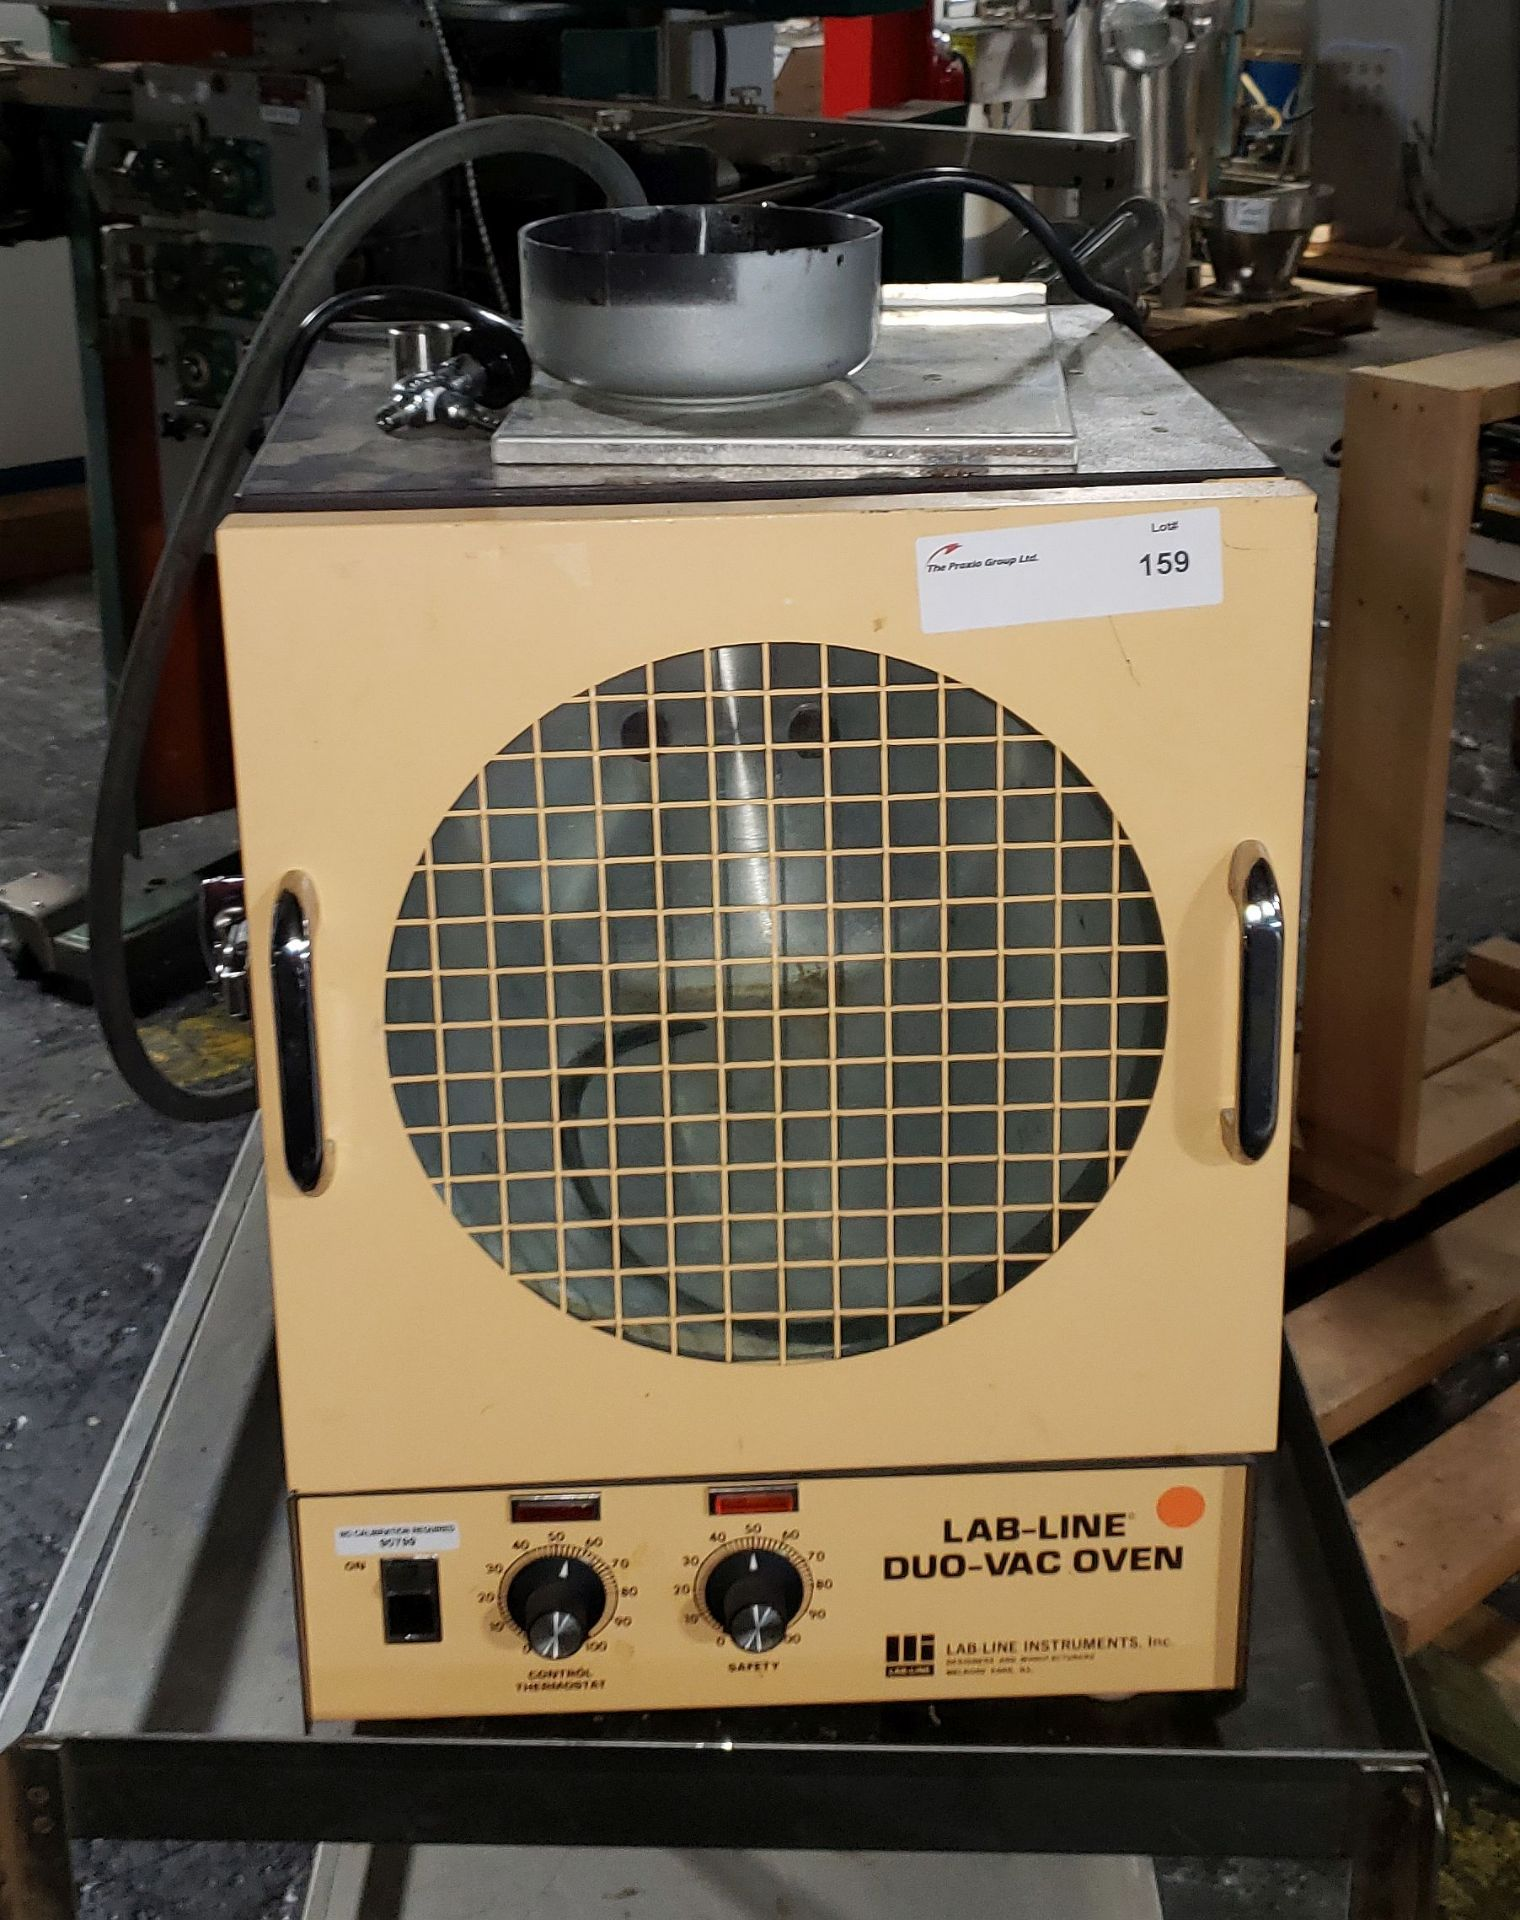 Lot 159 - Lab Line vacuum drying oven, model 3610